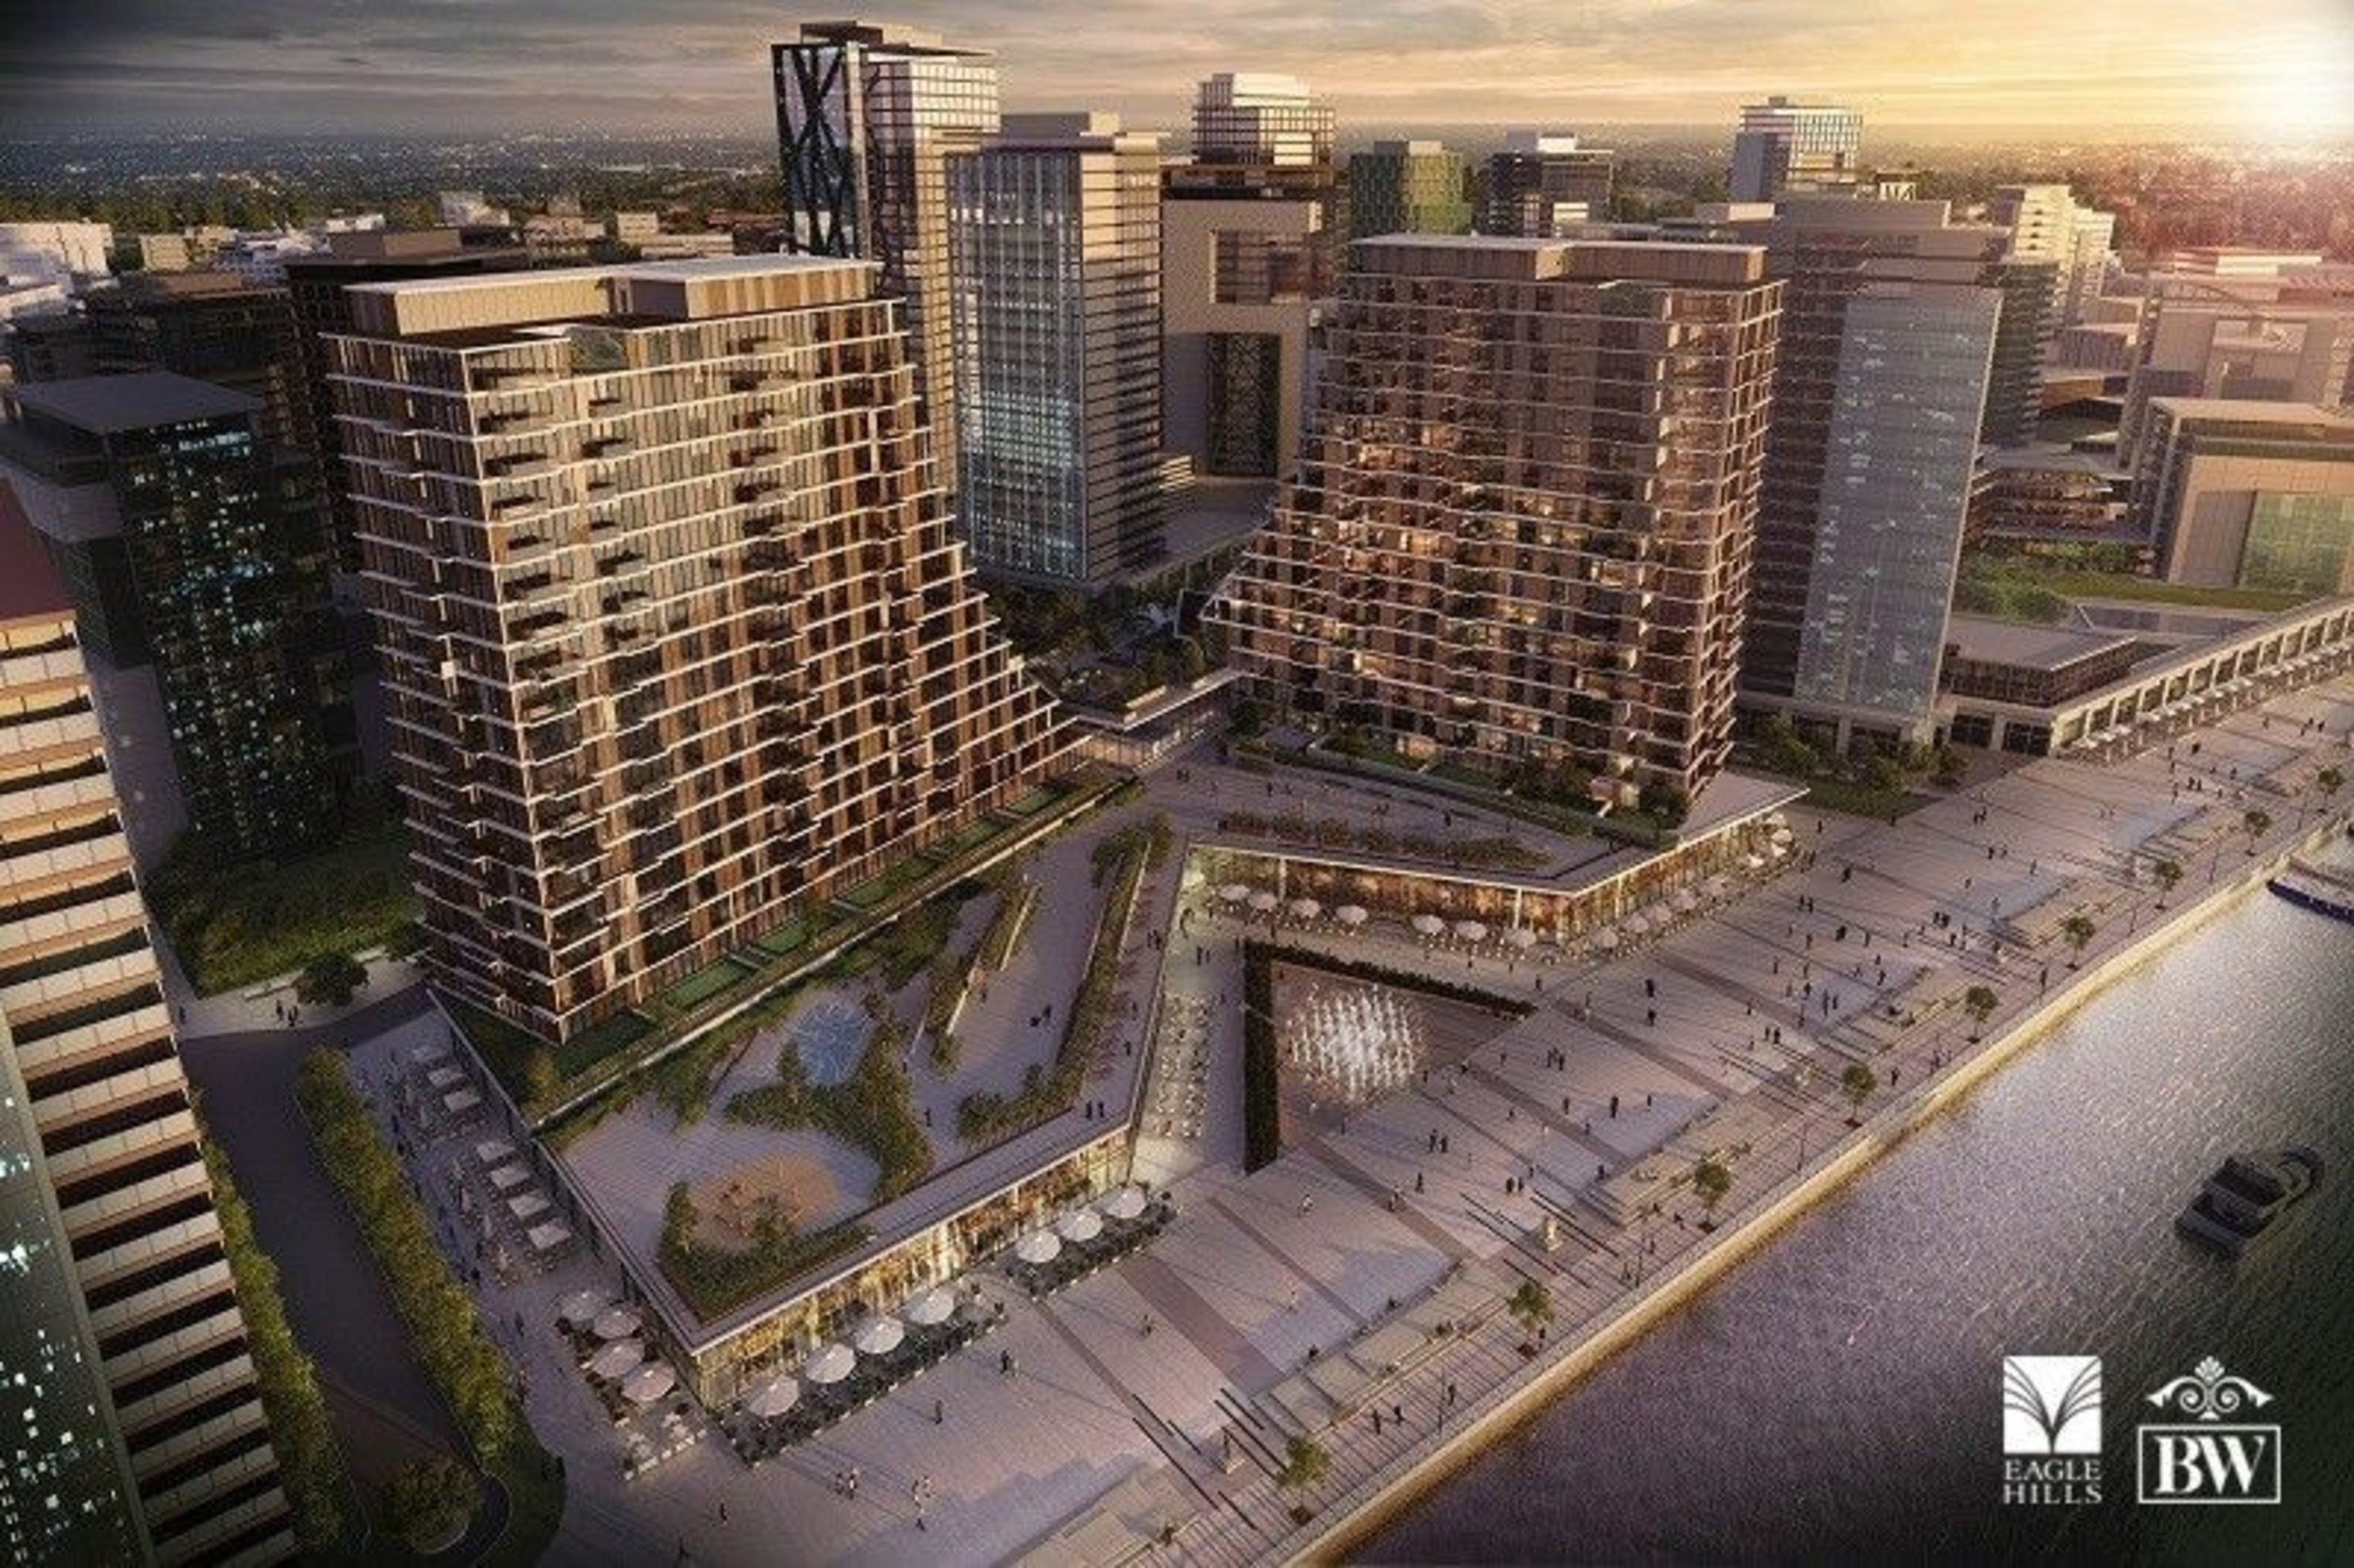 Belgrade Waterfront Announces Anticipated Sales Launch of BW Residences, with Exceptional Views of the Confluence and Kula Belgrade